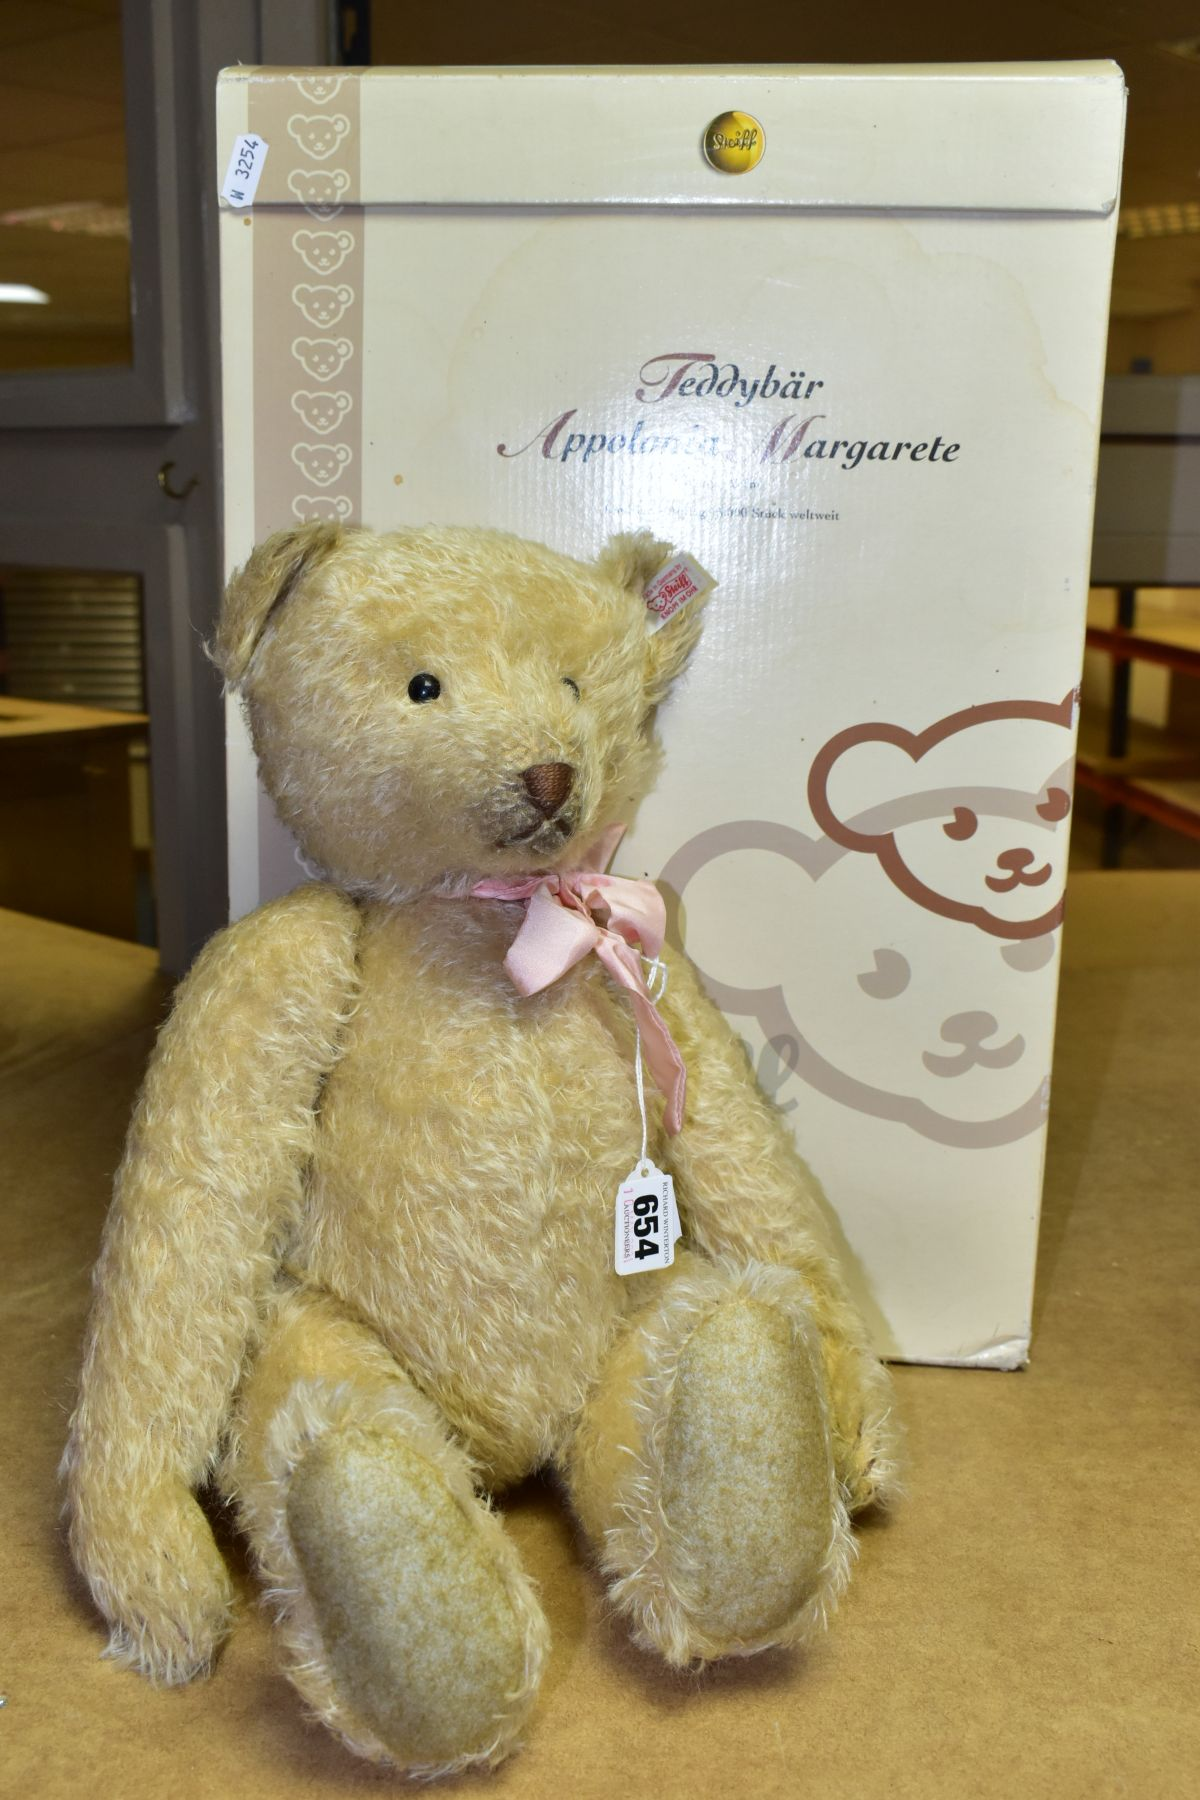 A BOXED STEIFF LIMITED EDITION APPOLONIA MARGARETE TEDDYBEAR, No. 038112, limited edition No. 1171